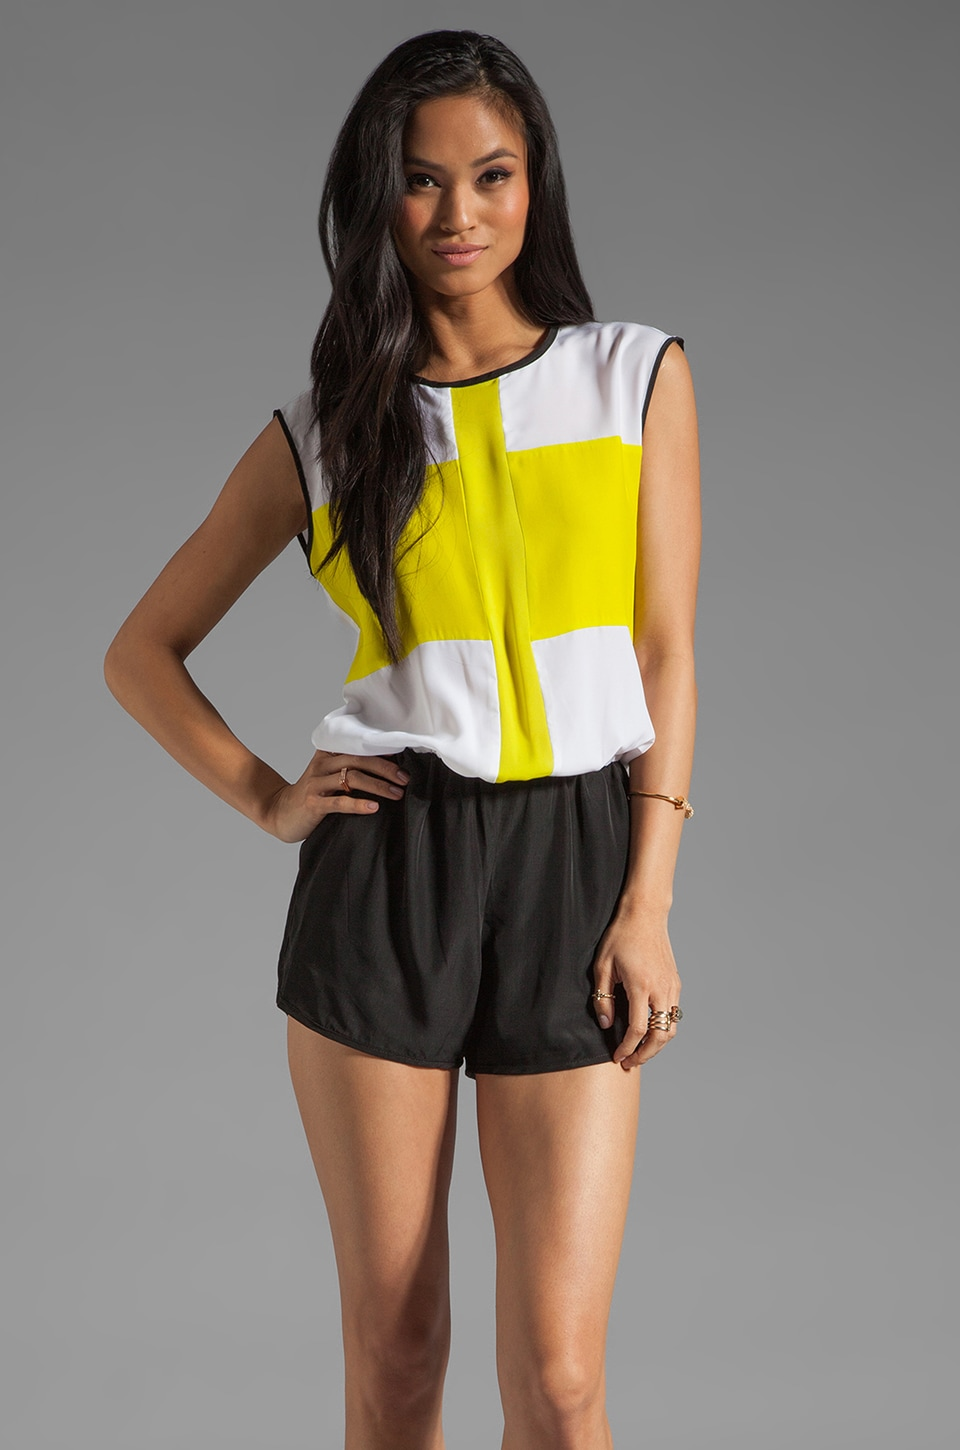 Karina Grimaldi Sport Combo Romper Color Block in Neon Yellow